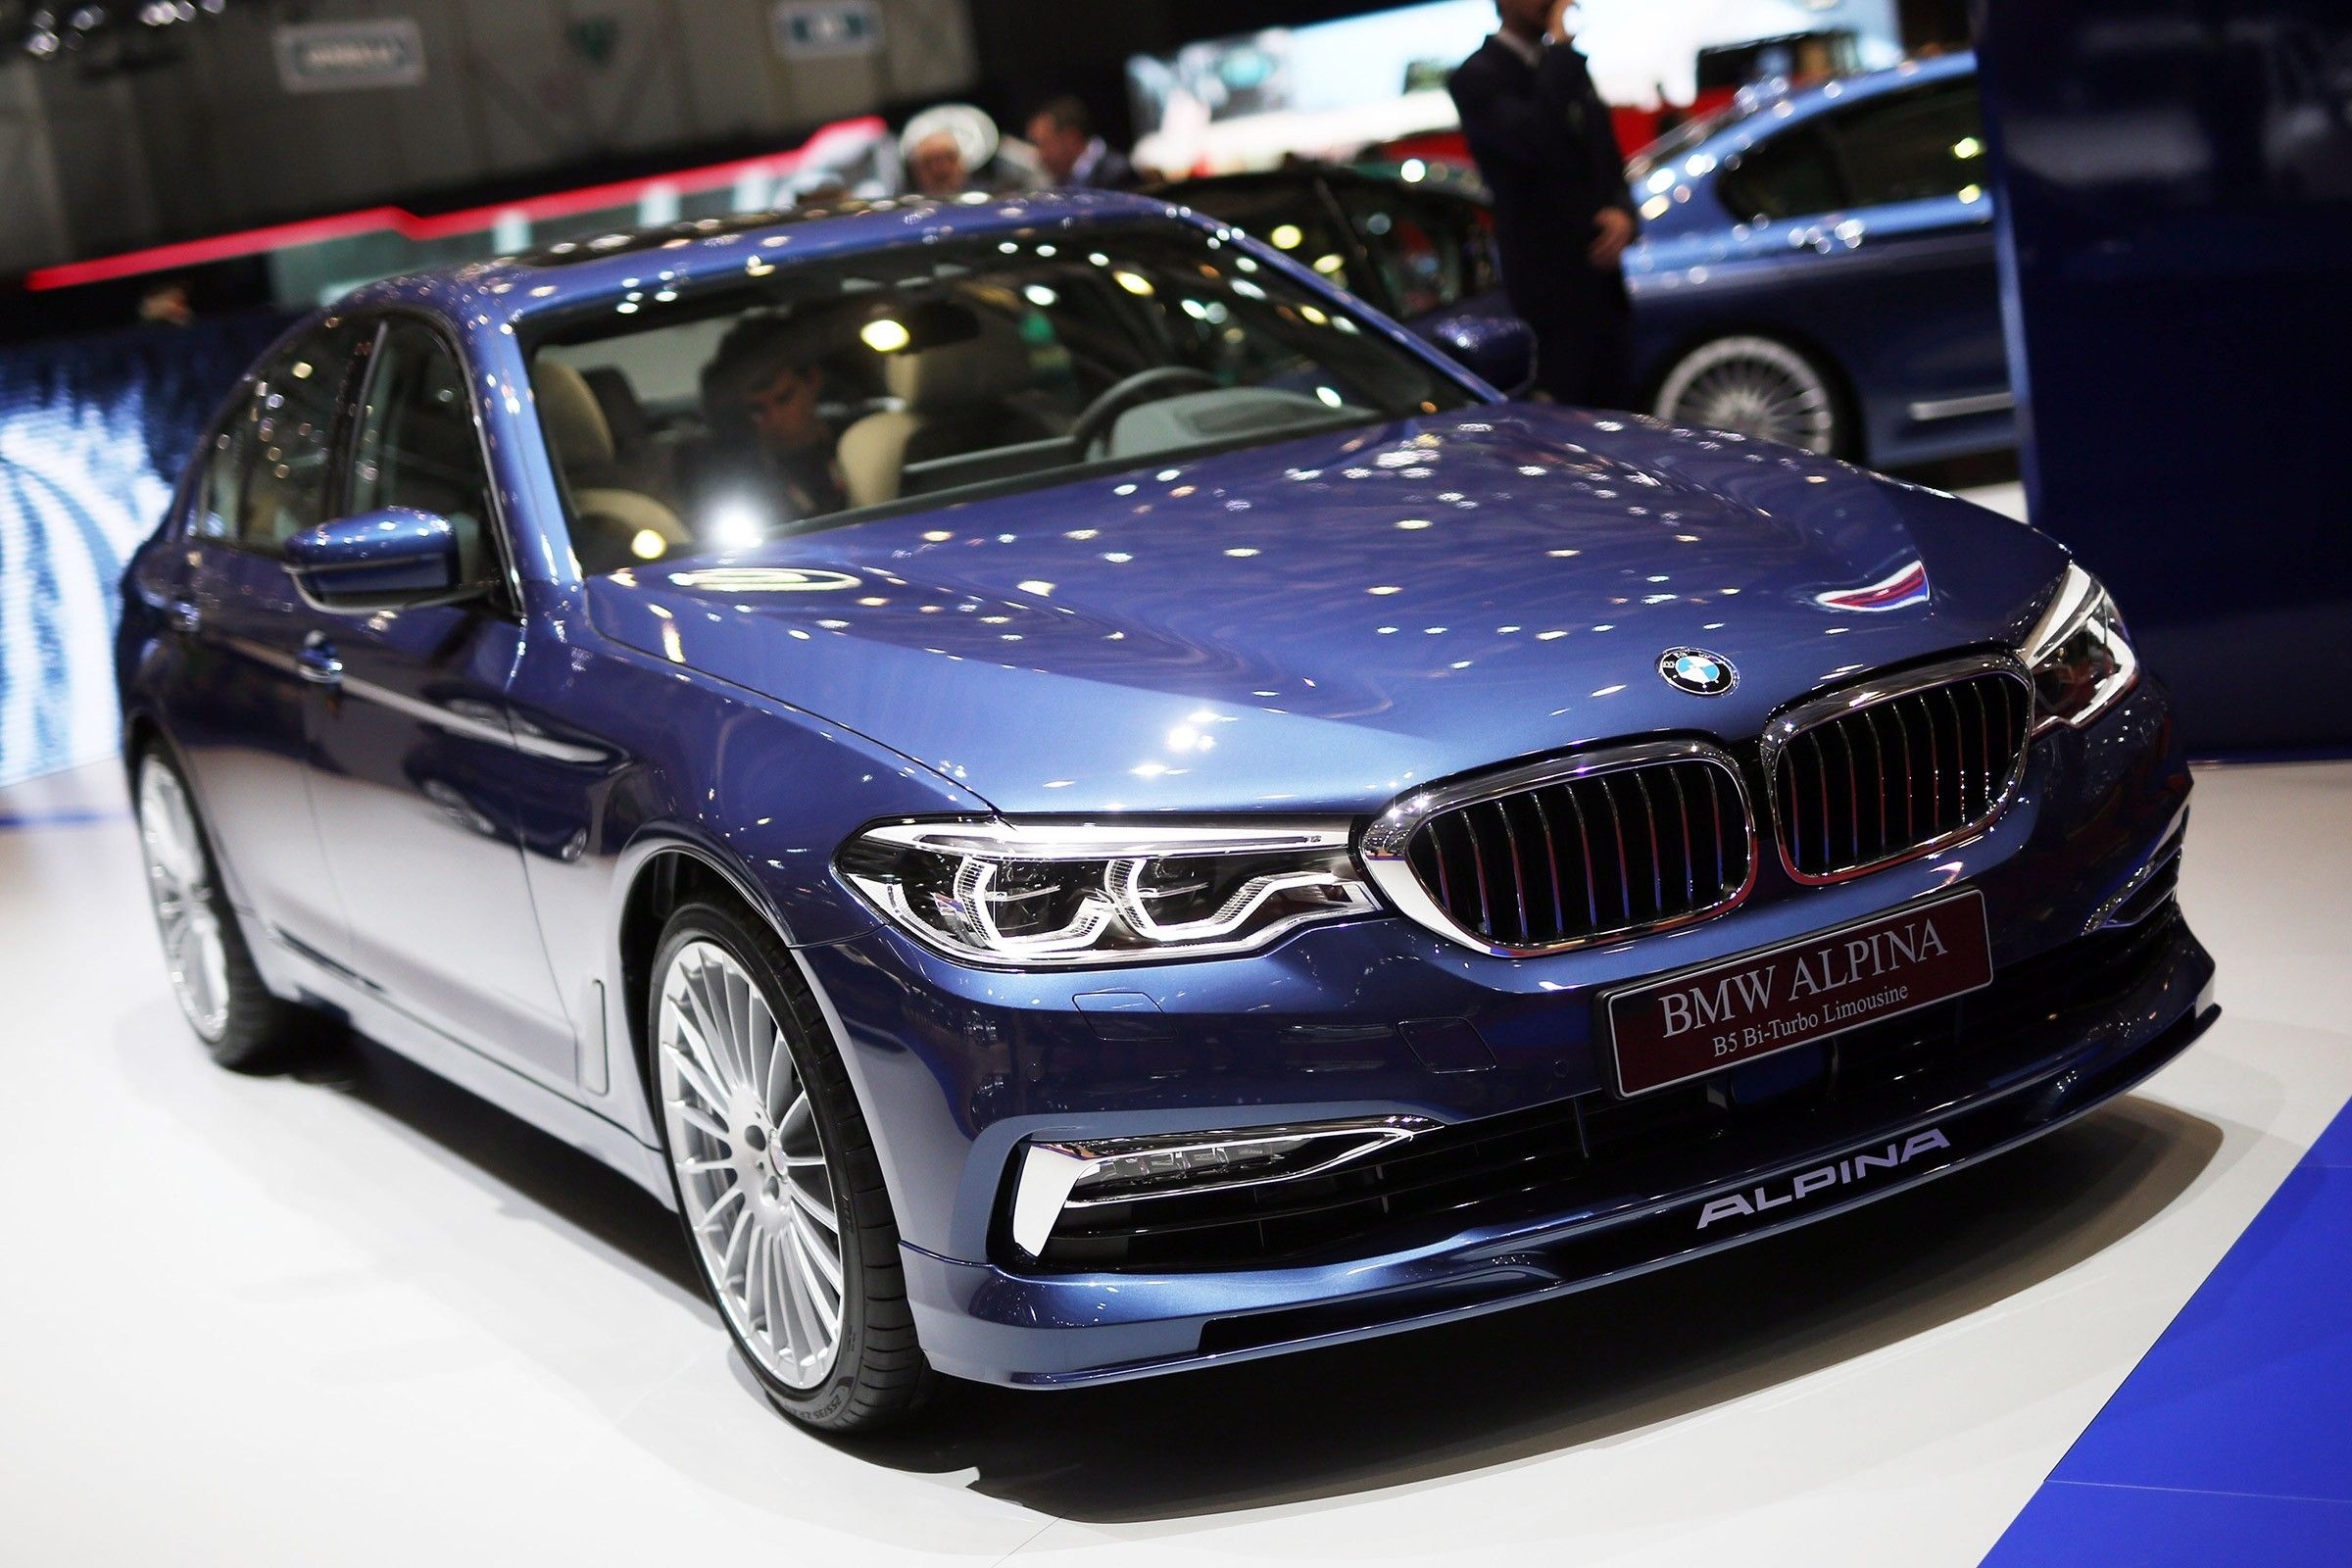 2019 Bmw Alpina B5 Biturbo Redesign And Price With Images Bmw